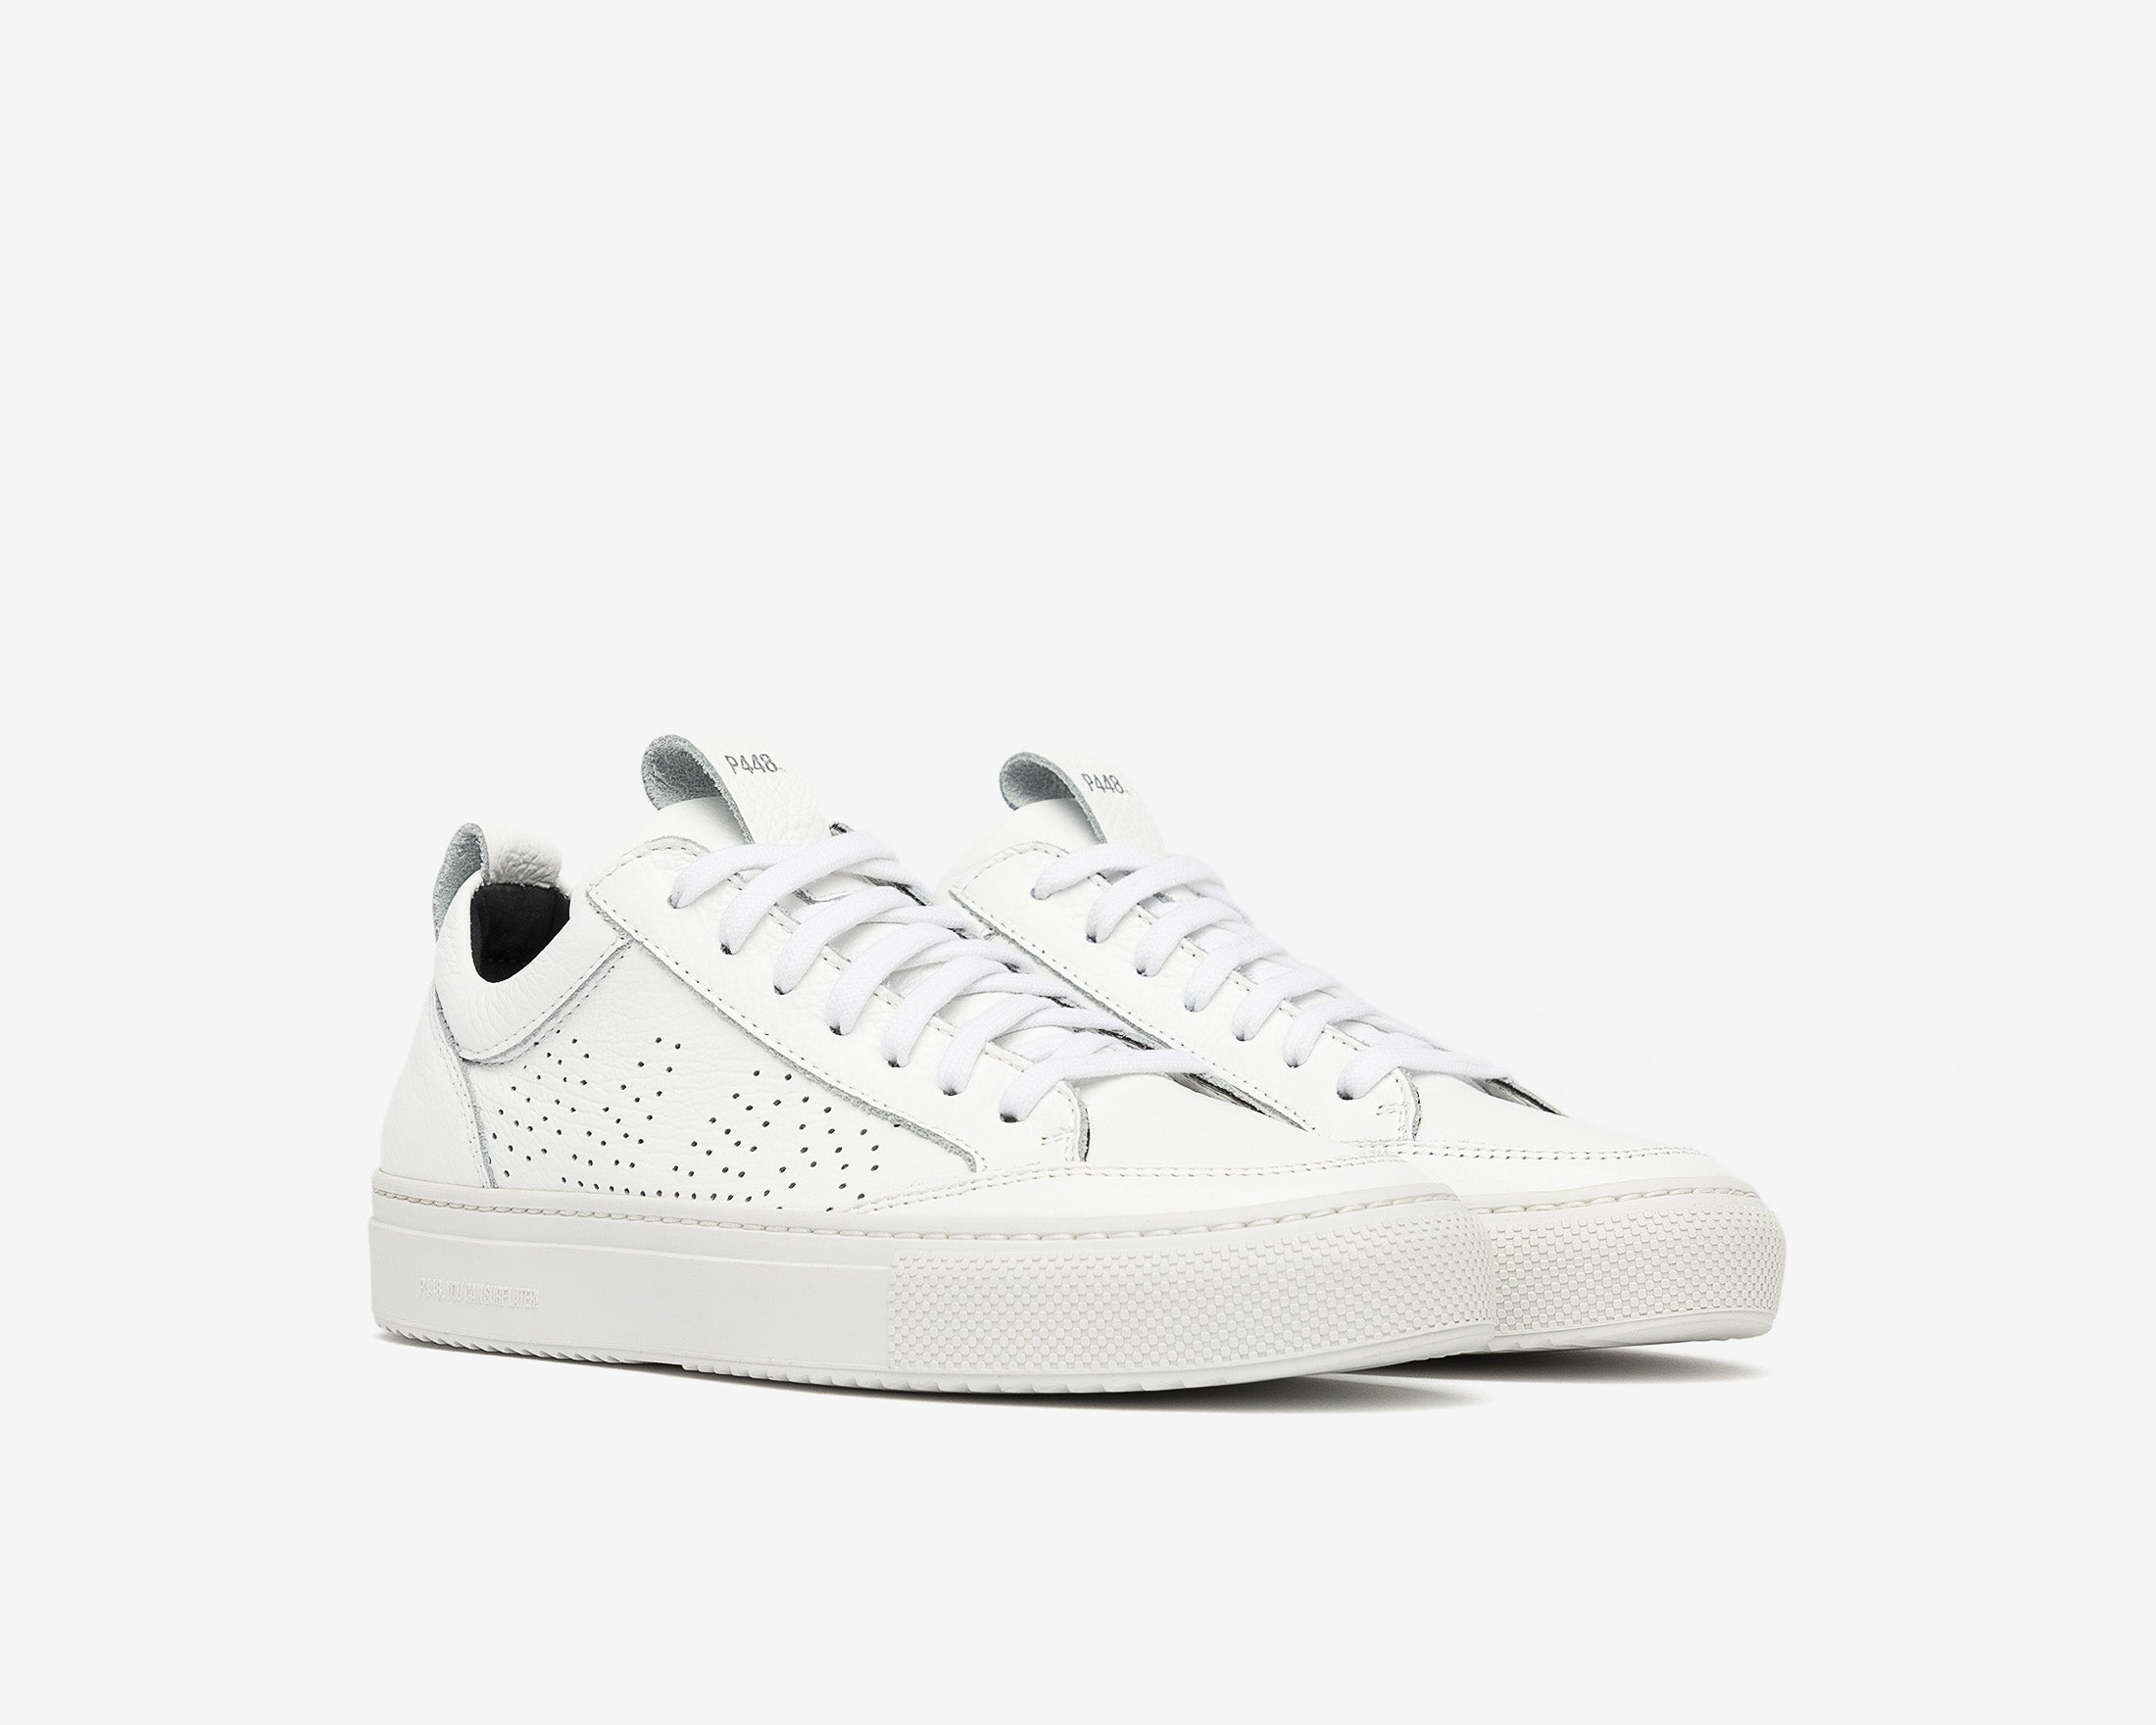 Soho Pull-on Sneaker in White - Side